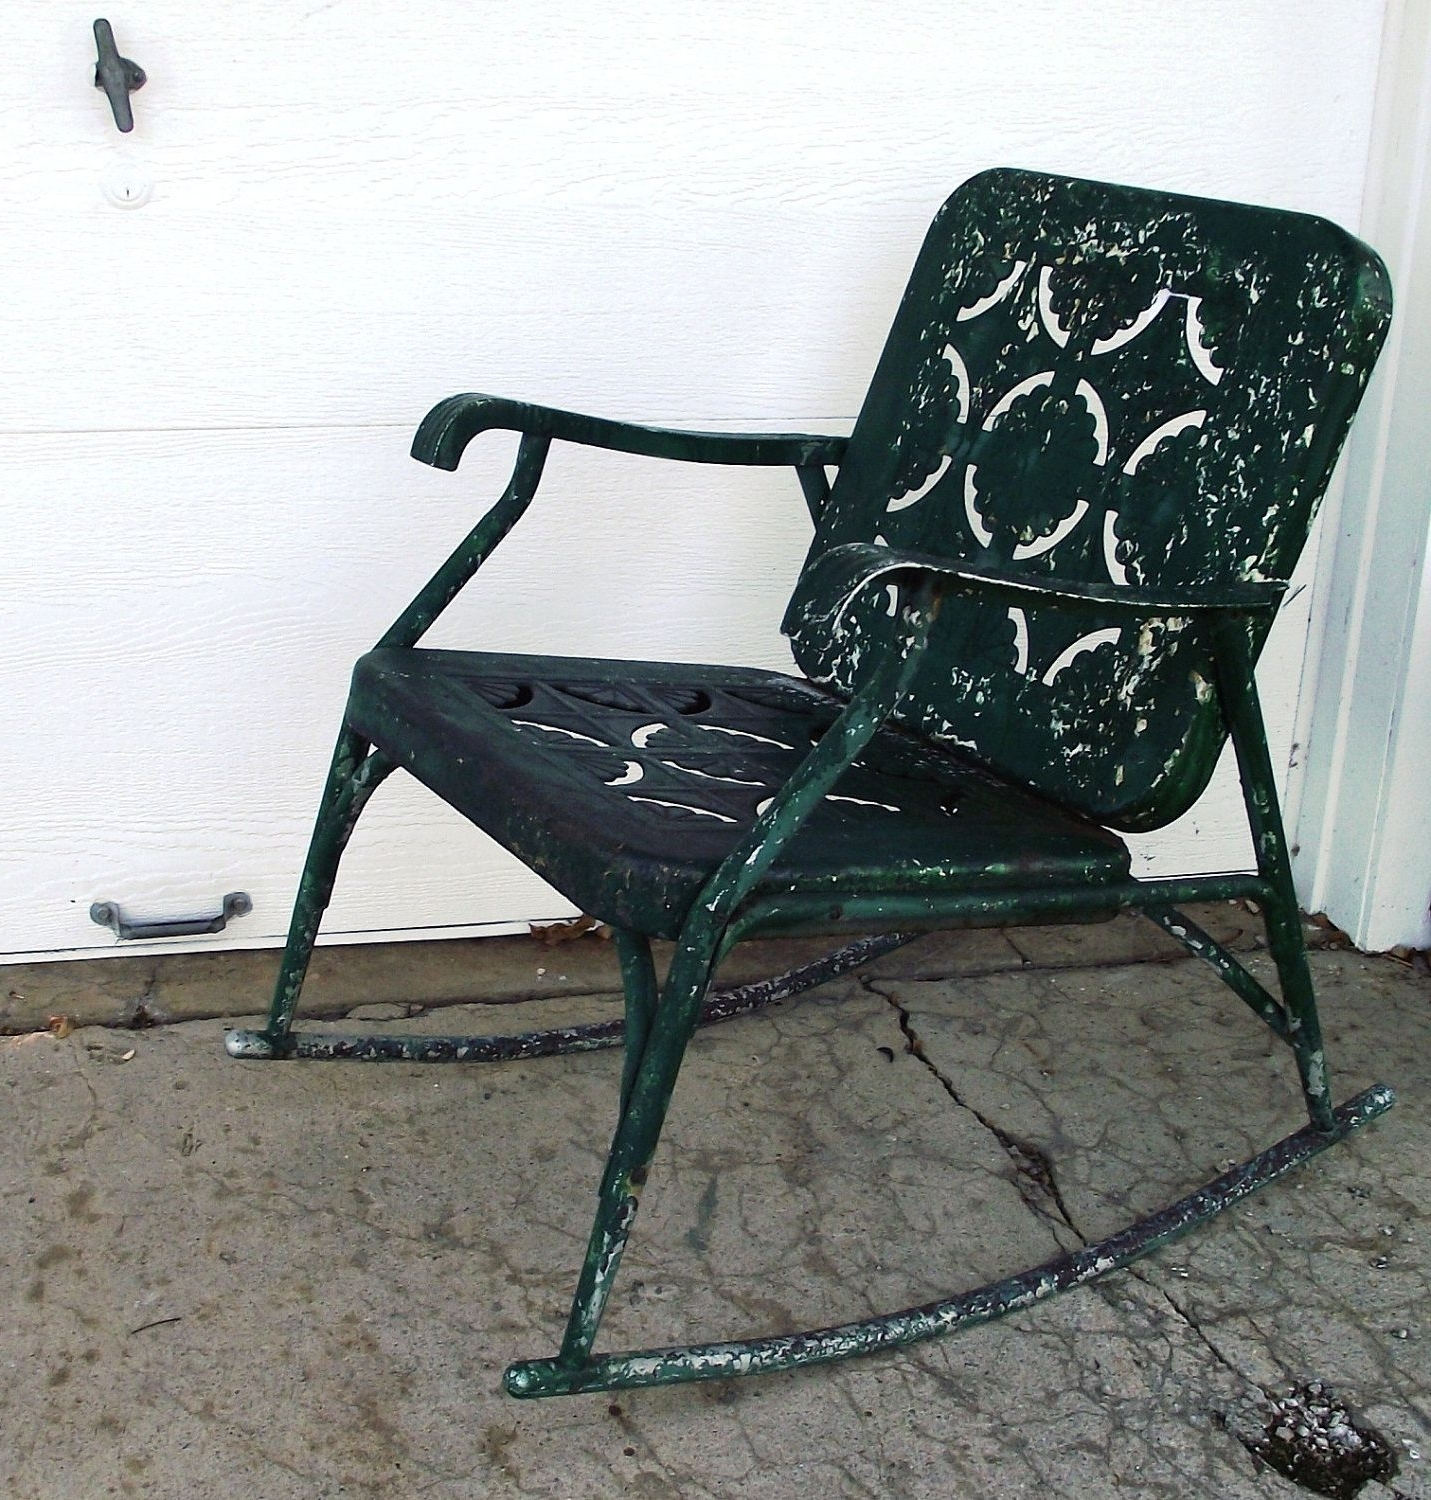 Vintage Metal Rocking Patio Chairs For Recent Vintage Garden Green Metal Rocking Chair Cutoutjodysvintage (View 12 of 15)